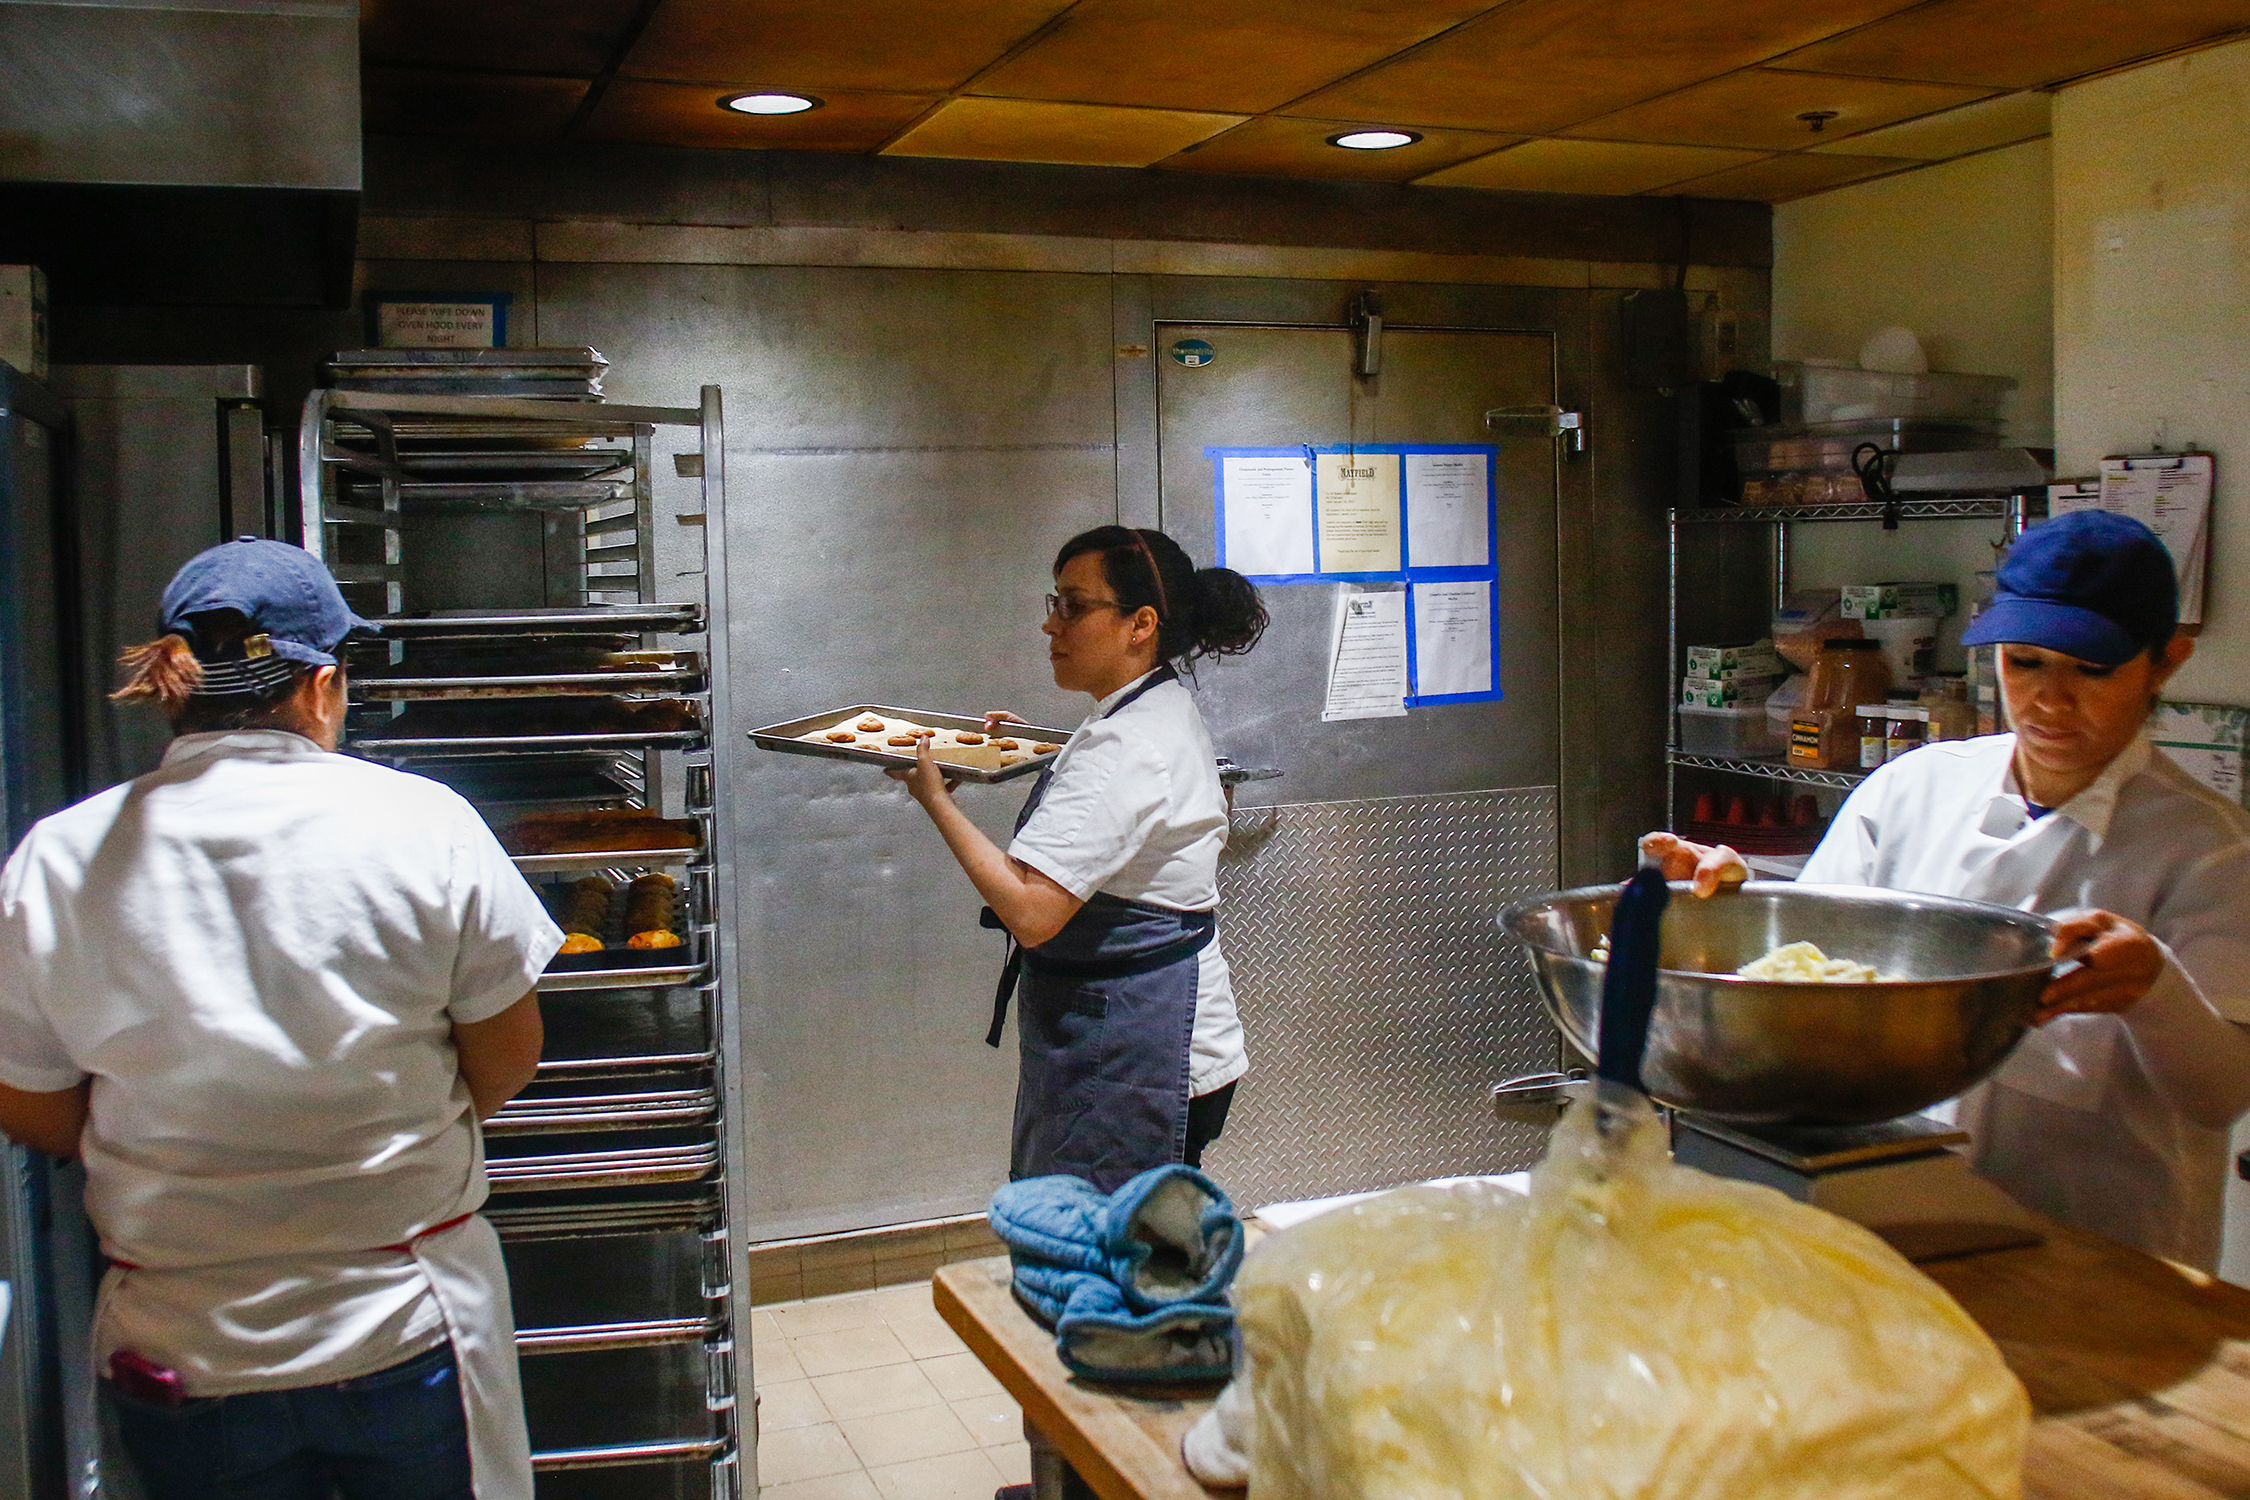 Janina O'Leary works in the kitchen atMayfield Bakery & Cafe. Photo by Veronica Weber.